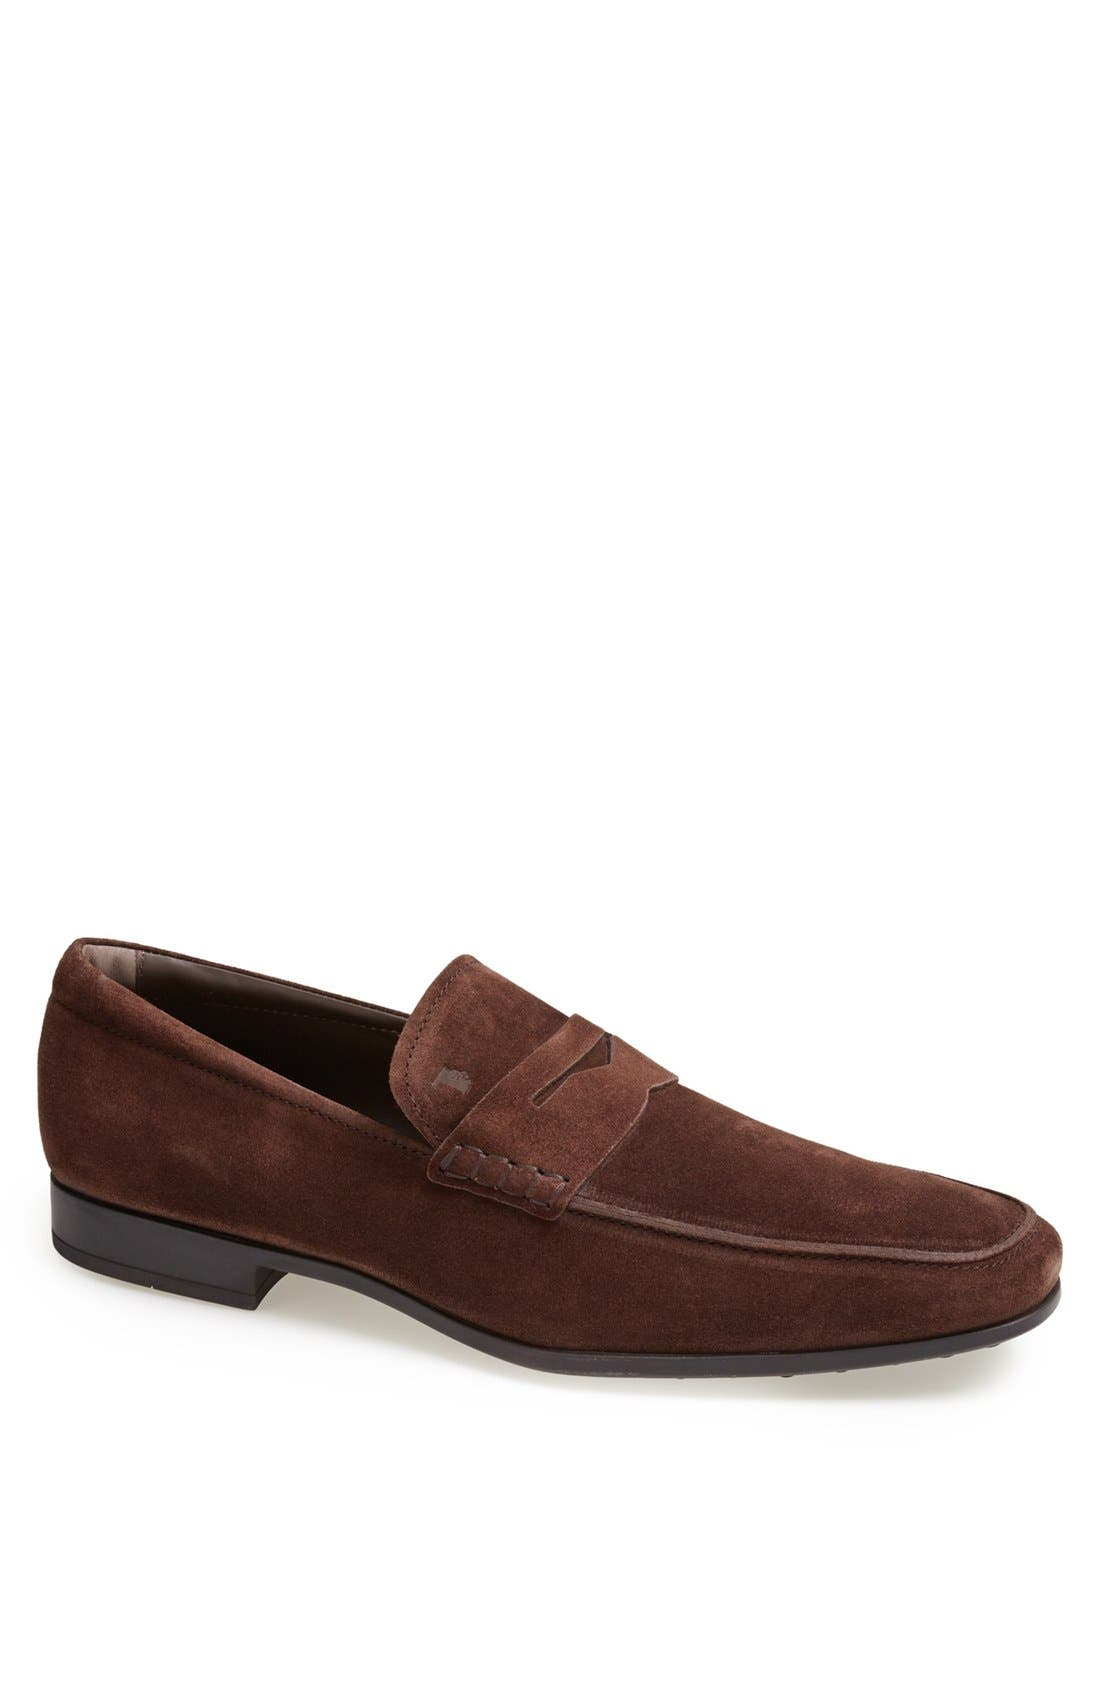 Main Image - Tod's 'Gomma' Suede Penny Loafer